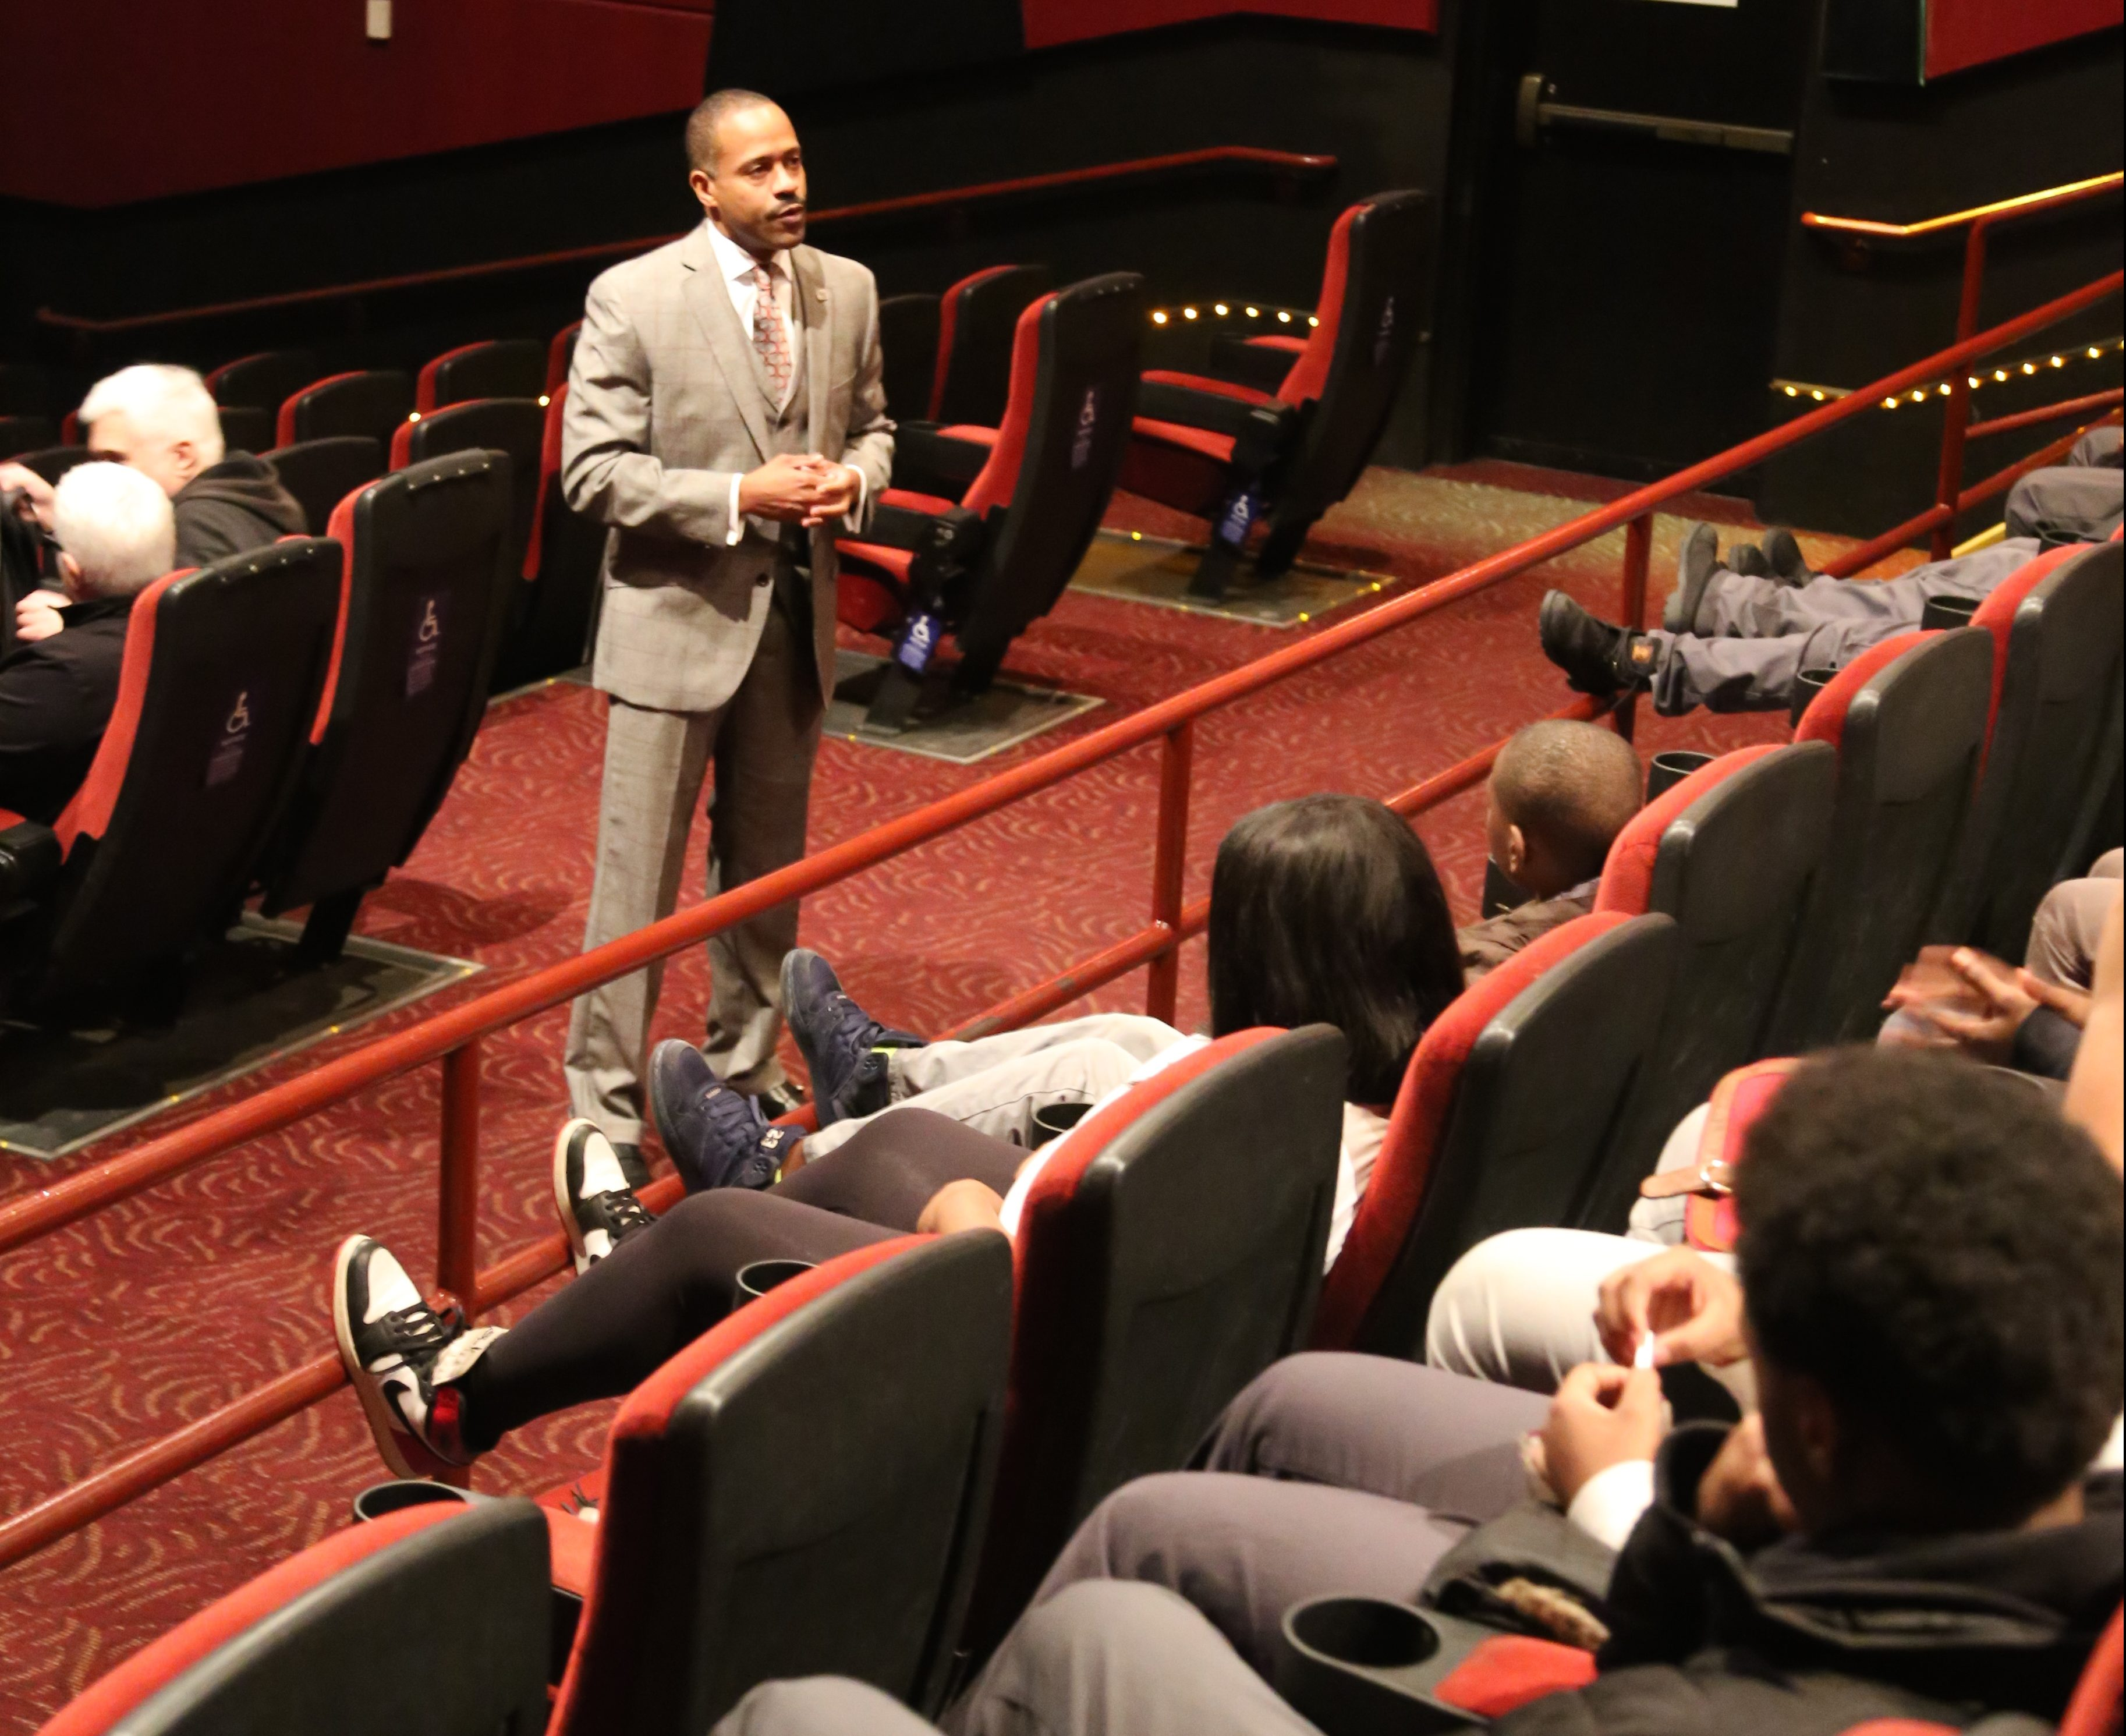 Image: Fifth Third Bank's Market President Eric S. Smith stands inside a movie theater speaking to two rows of teens in theater seats.